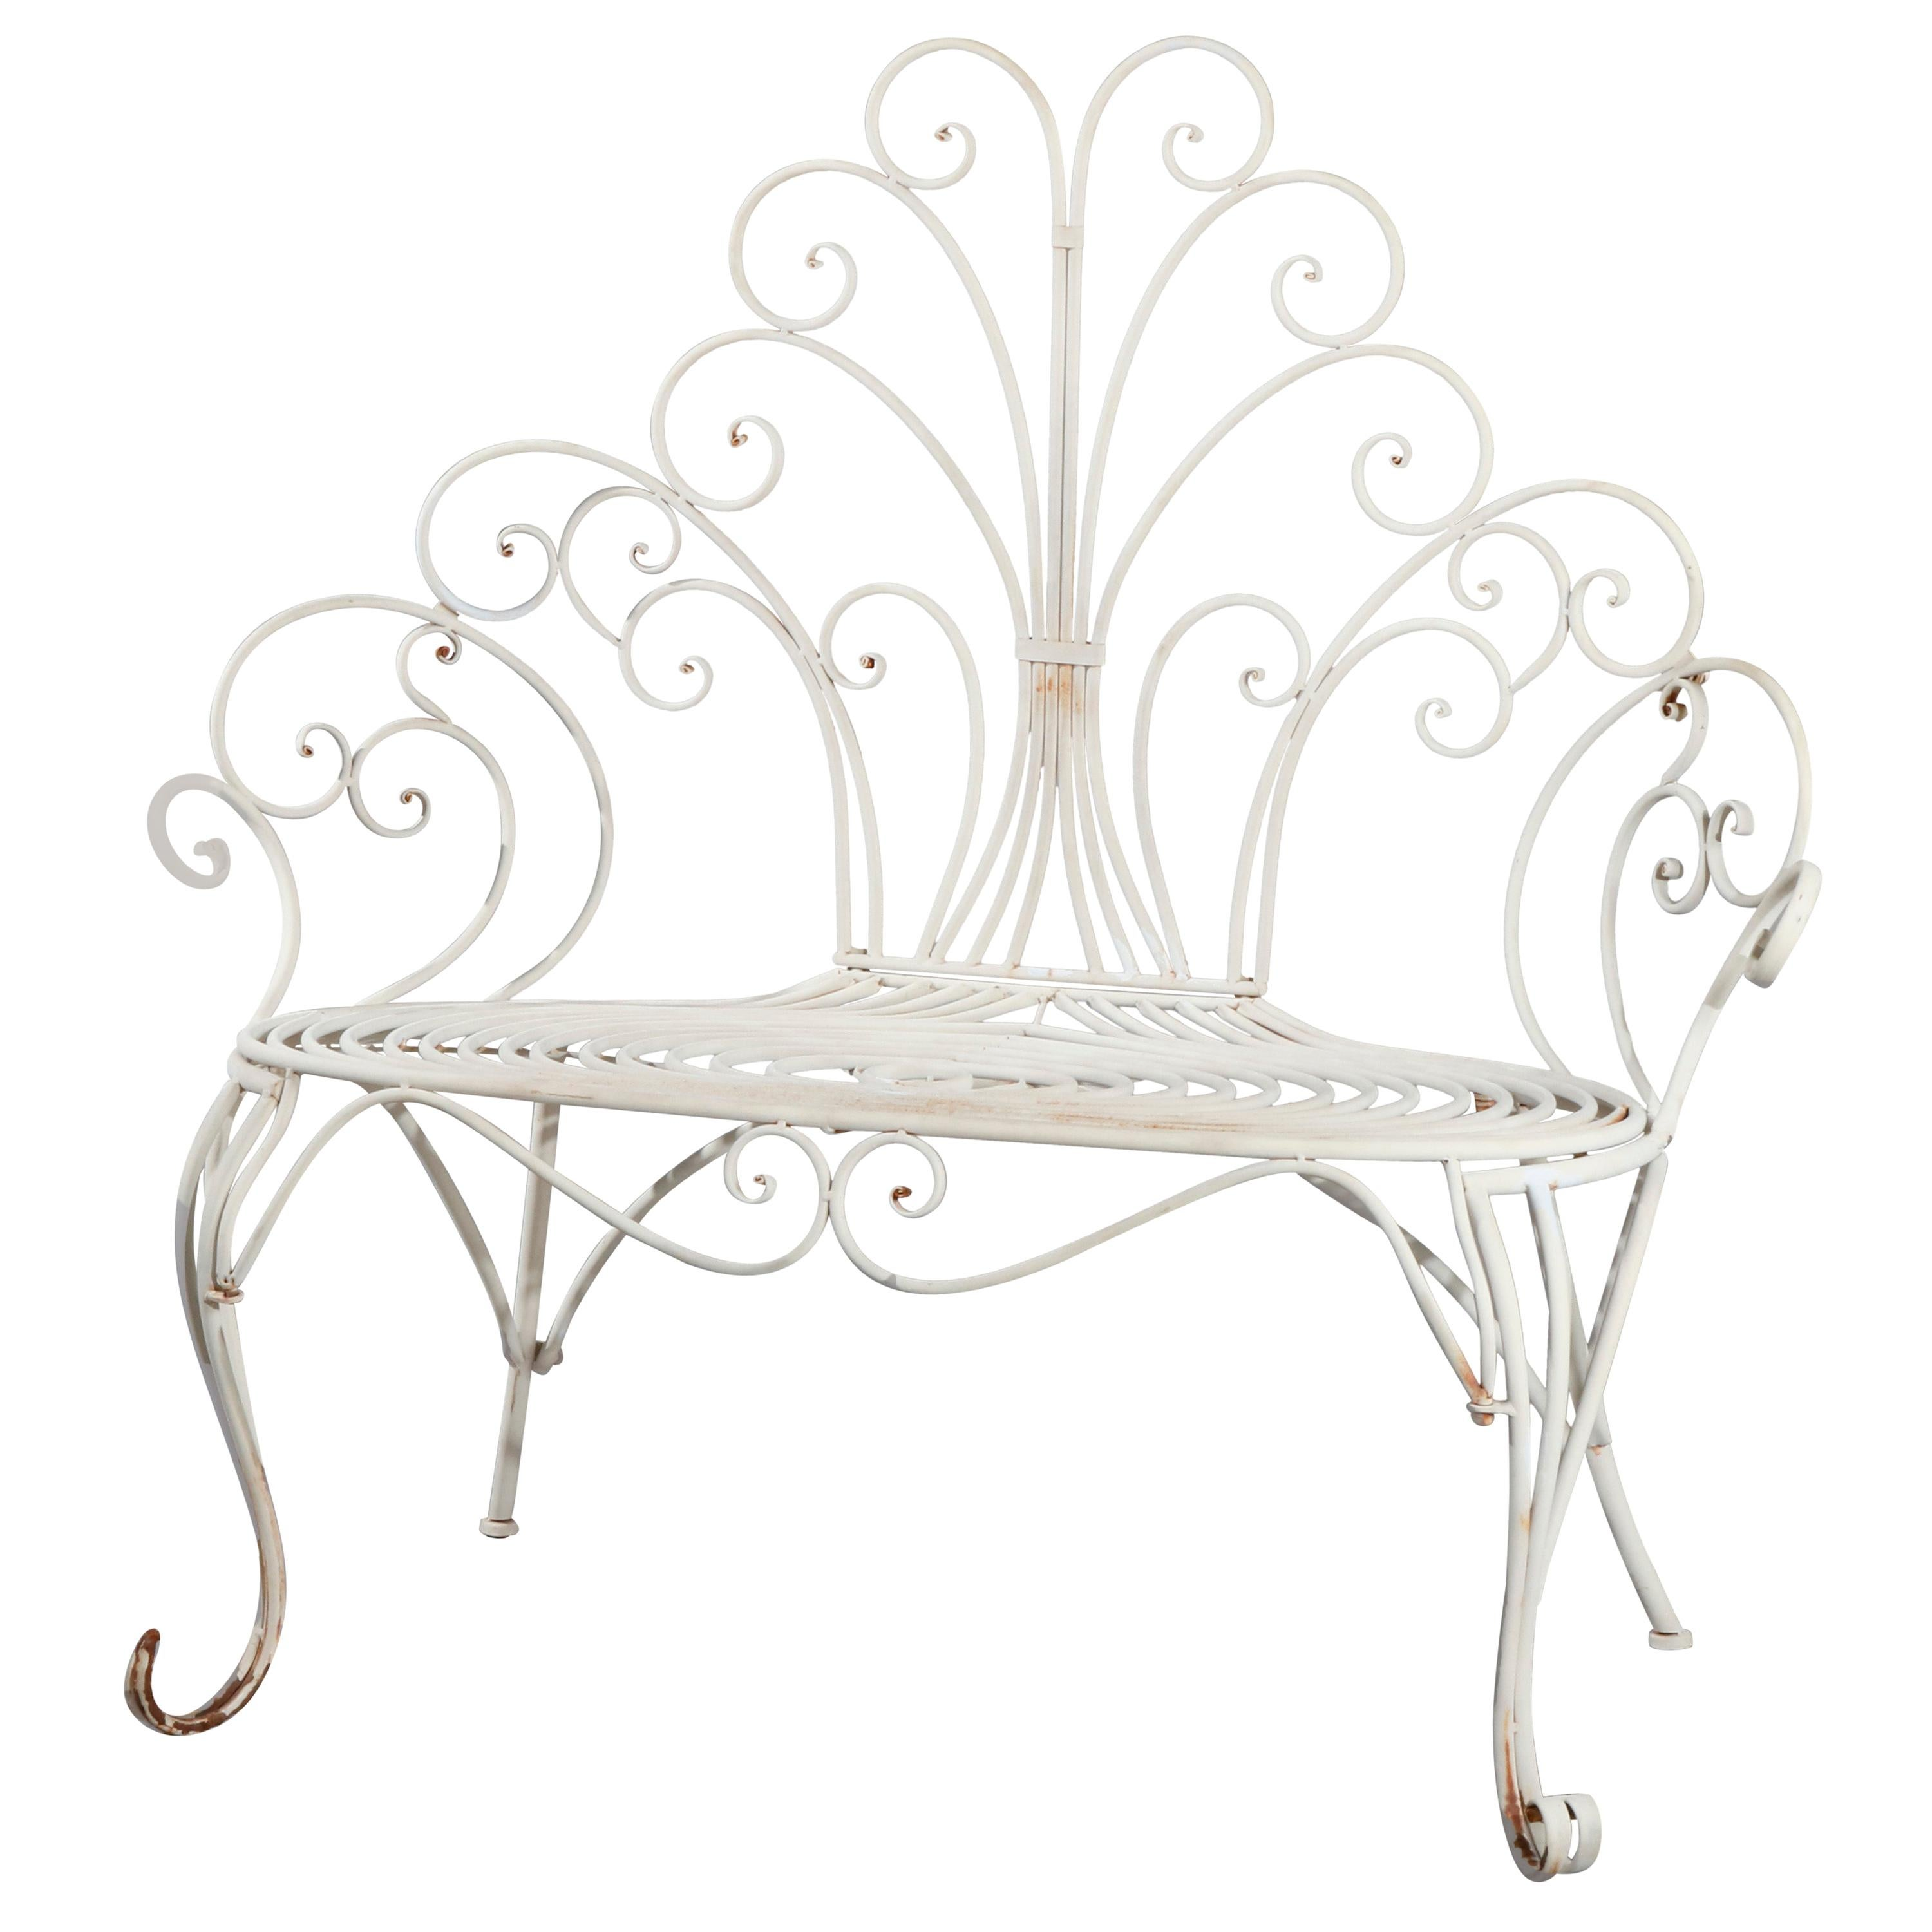 Contemporary Victorian Style High Wire Form Garden Bench, 20th Century